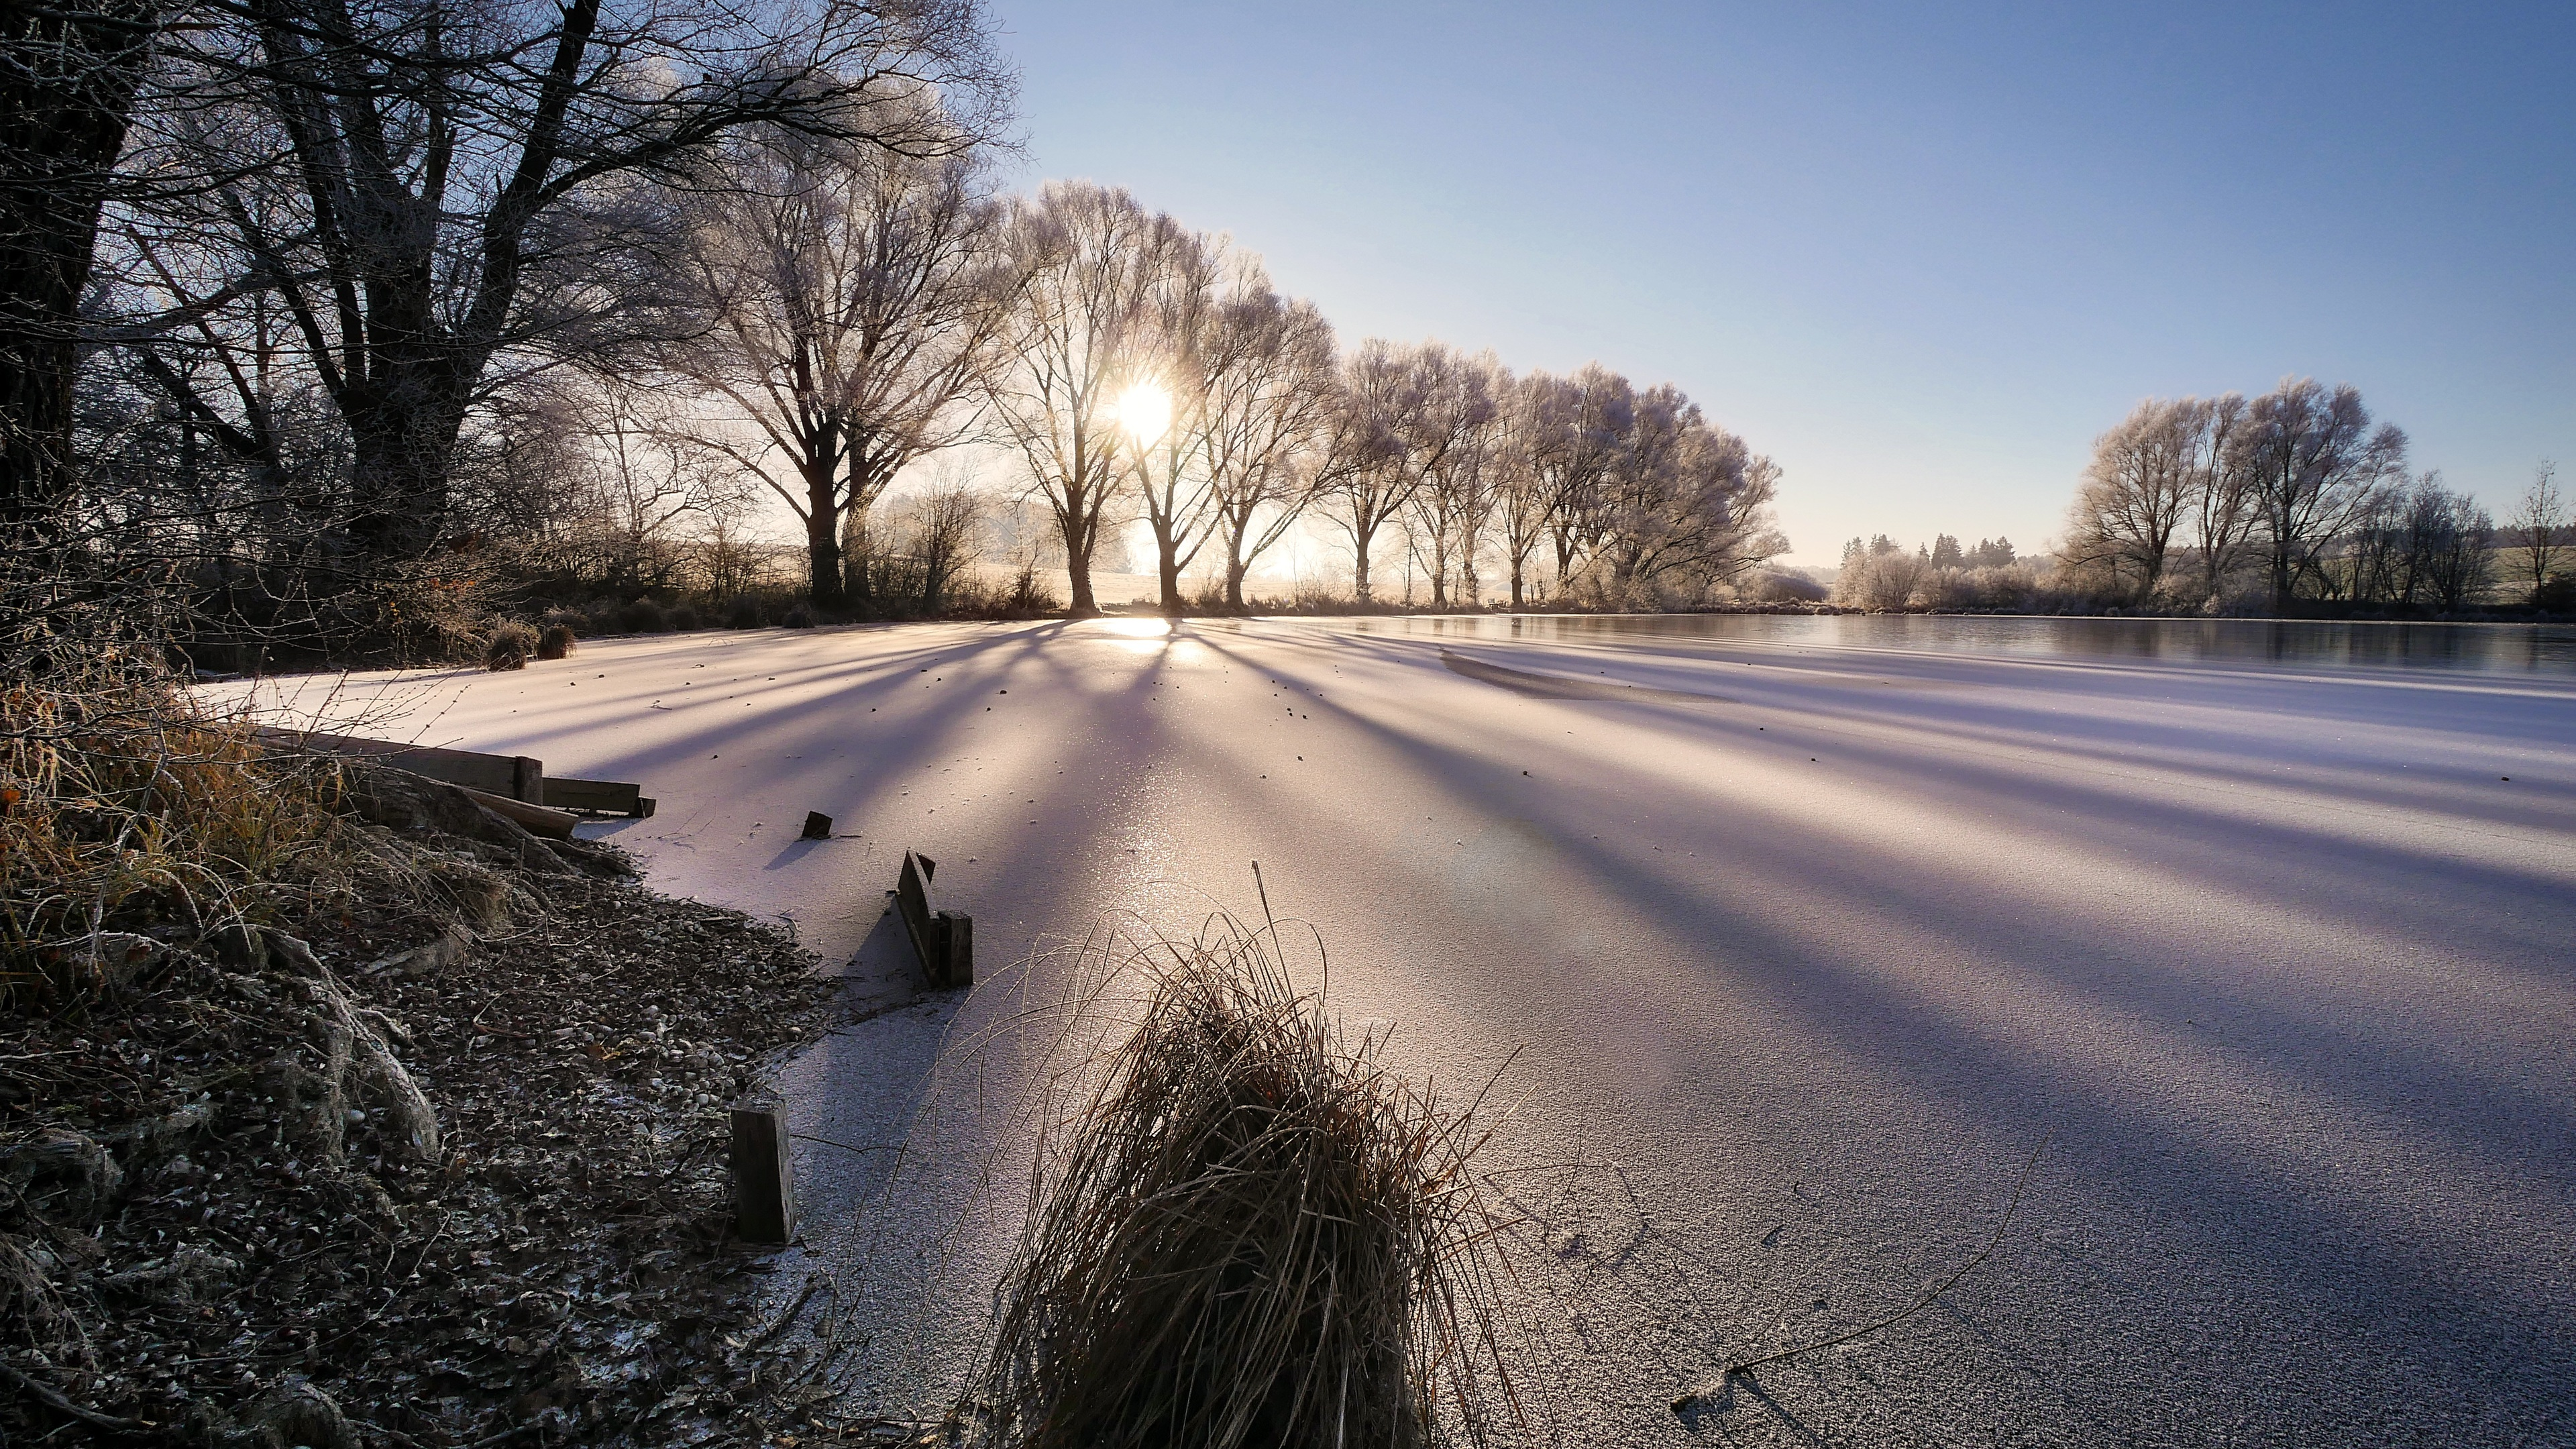 cold wintry frozen lake sunbeam trees 4k 1540134127 - Cold Wintry Frozen Lake Sunbeam Trees 4k - winter wallpapers, trees wallpapers, sunbeam wallpapers, lake wallpapers, hd-wallpapers, frozen wallpapers, cold wallpapers, 5k wallpapers, 4k-wallpapers